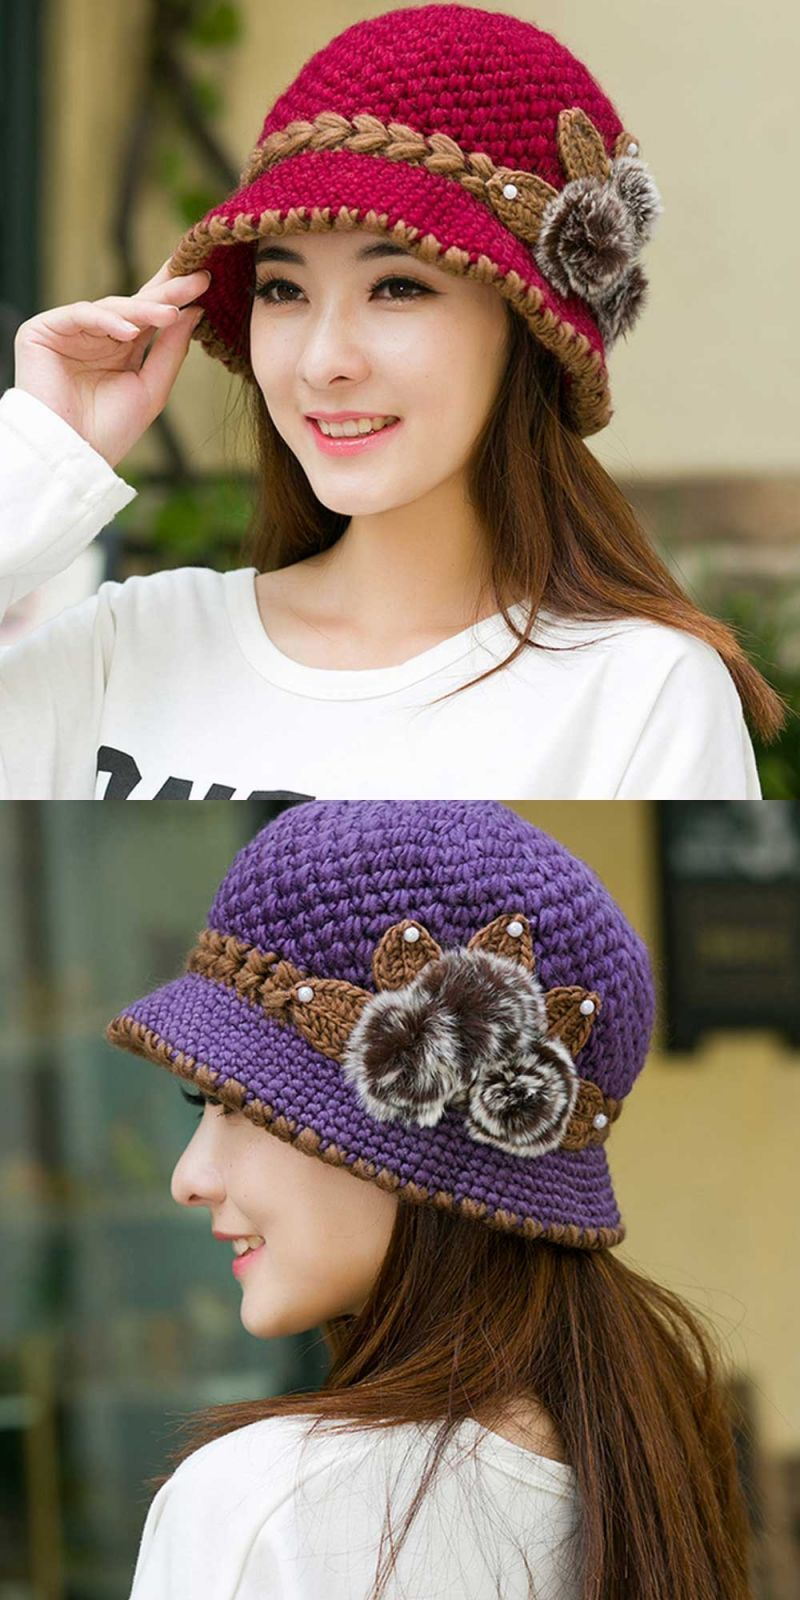 156fbc0ffcf New fashion women lady winter warm casual caps female beautiful wool  crochet knitted flowers decorated ears hats beanies  skullies     beanies   women  adult ...